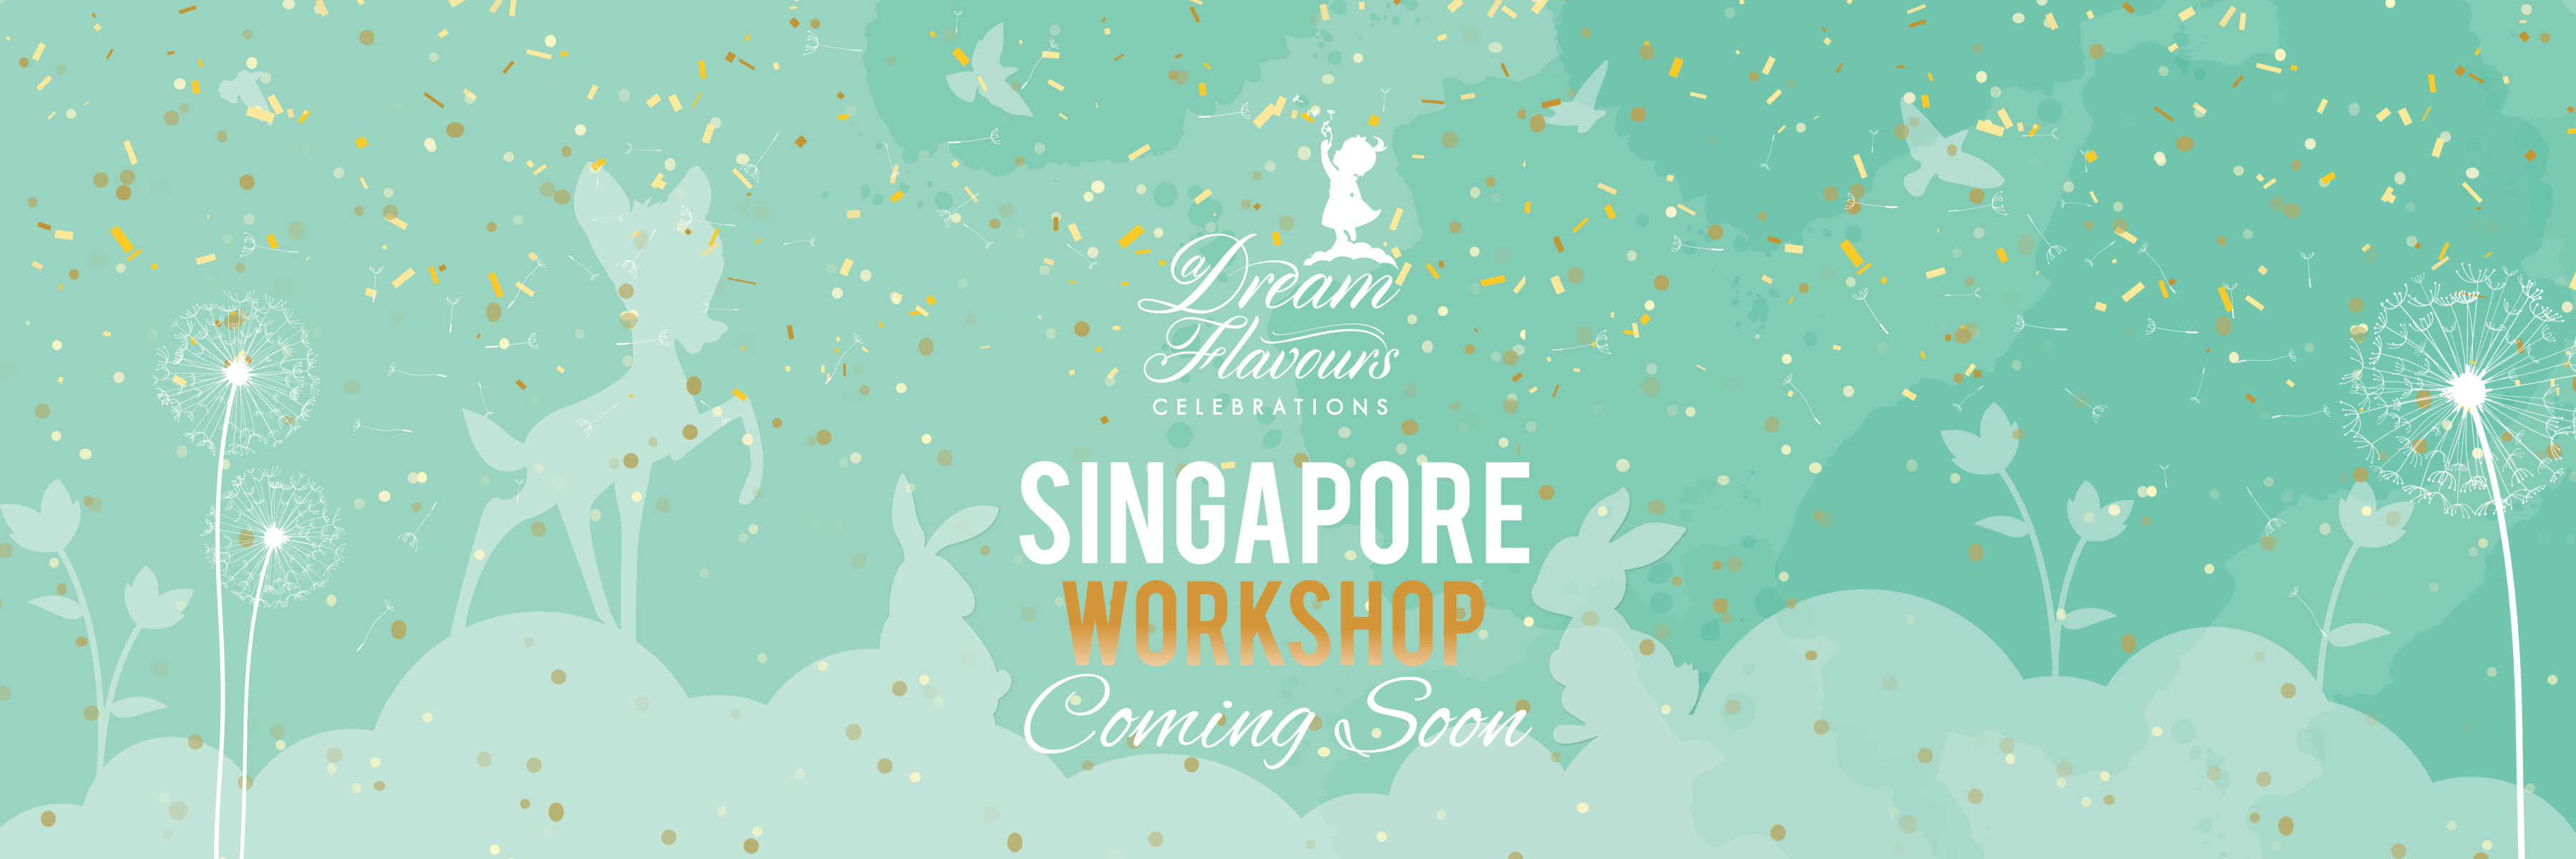 Singapore Workshop